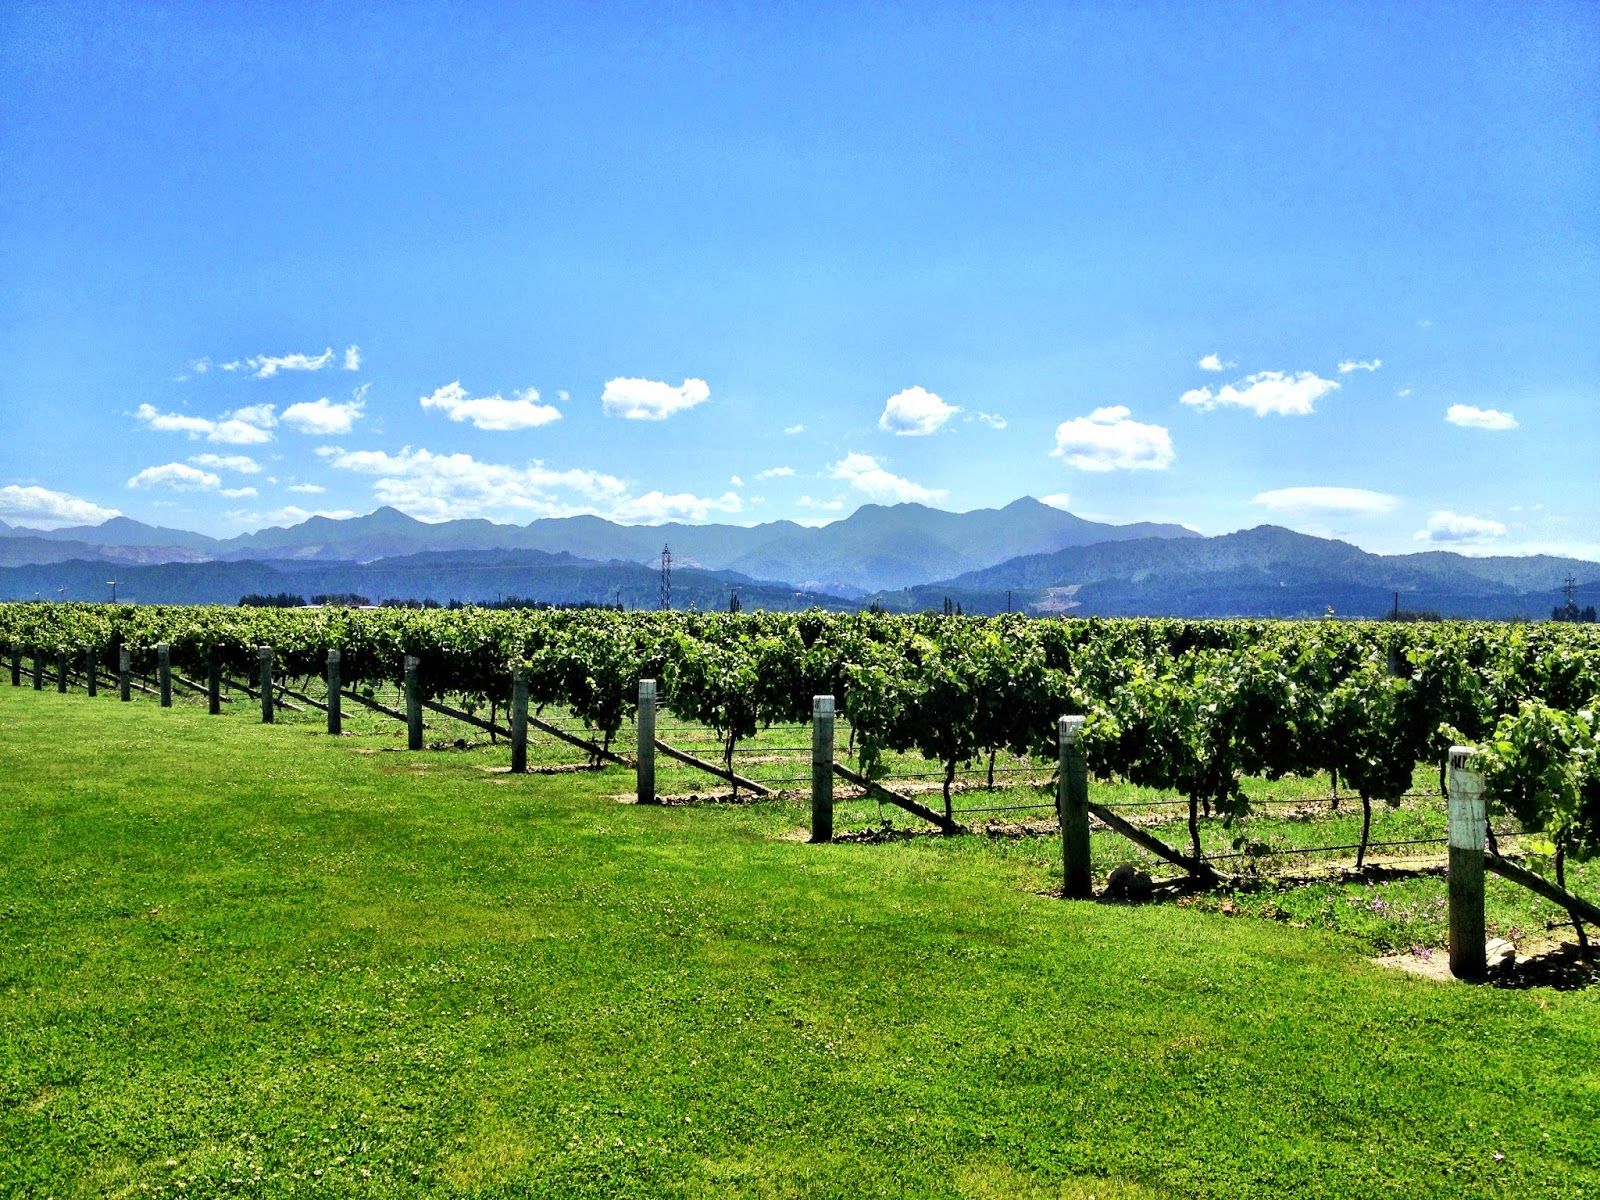 View from Spy Valley winery, Marlborough, New Zealand